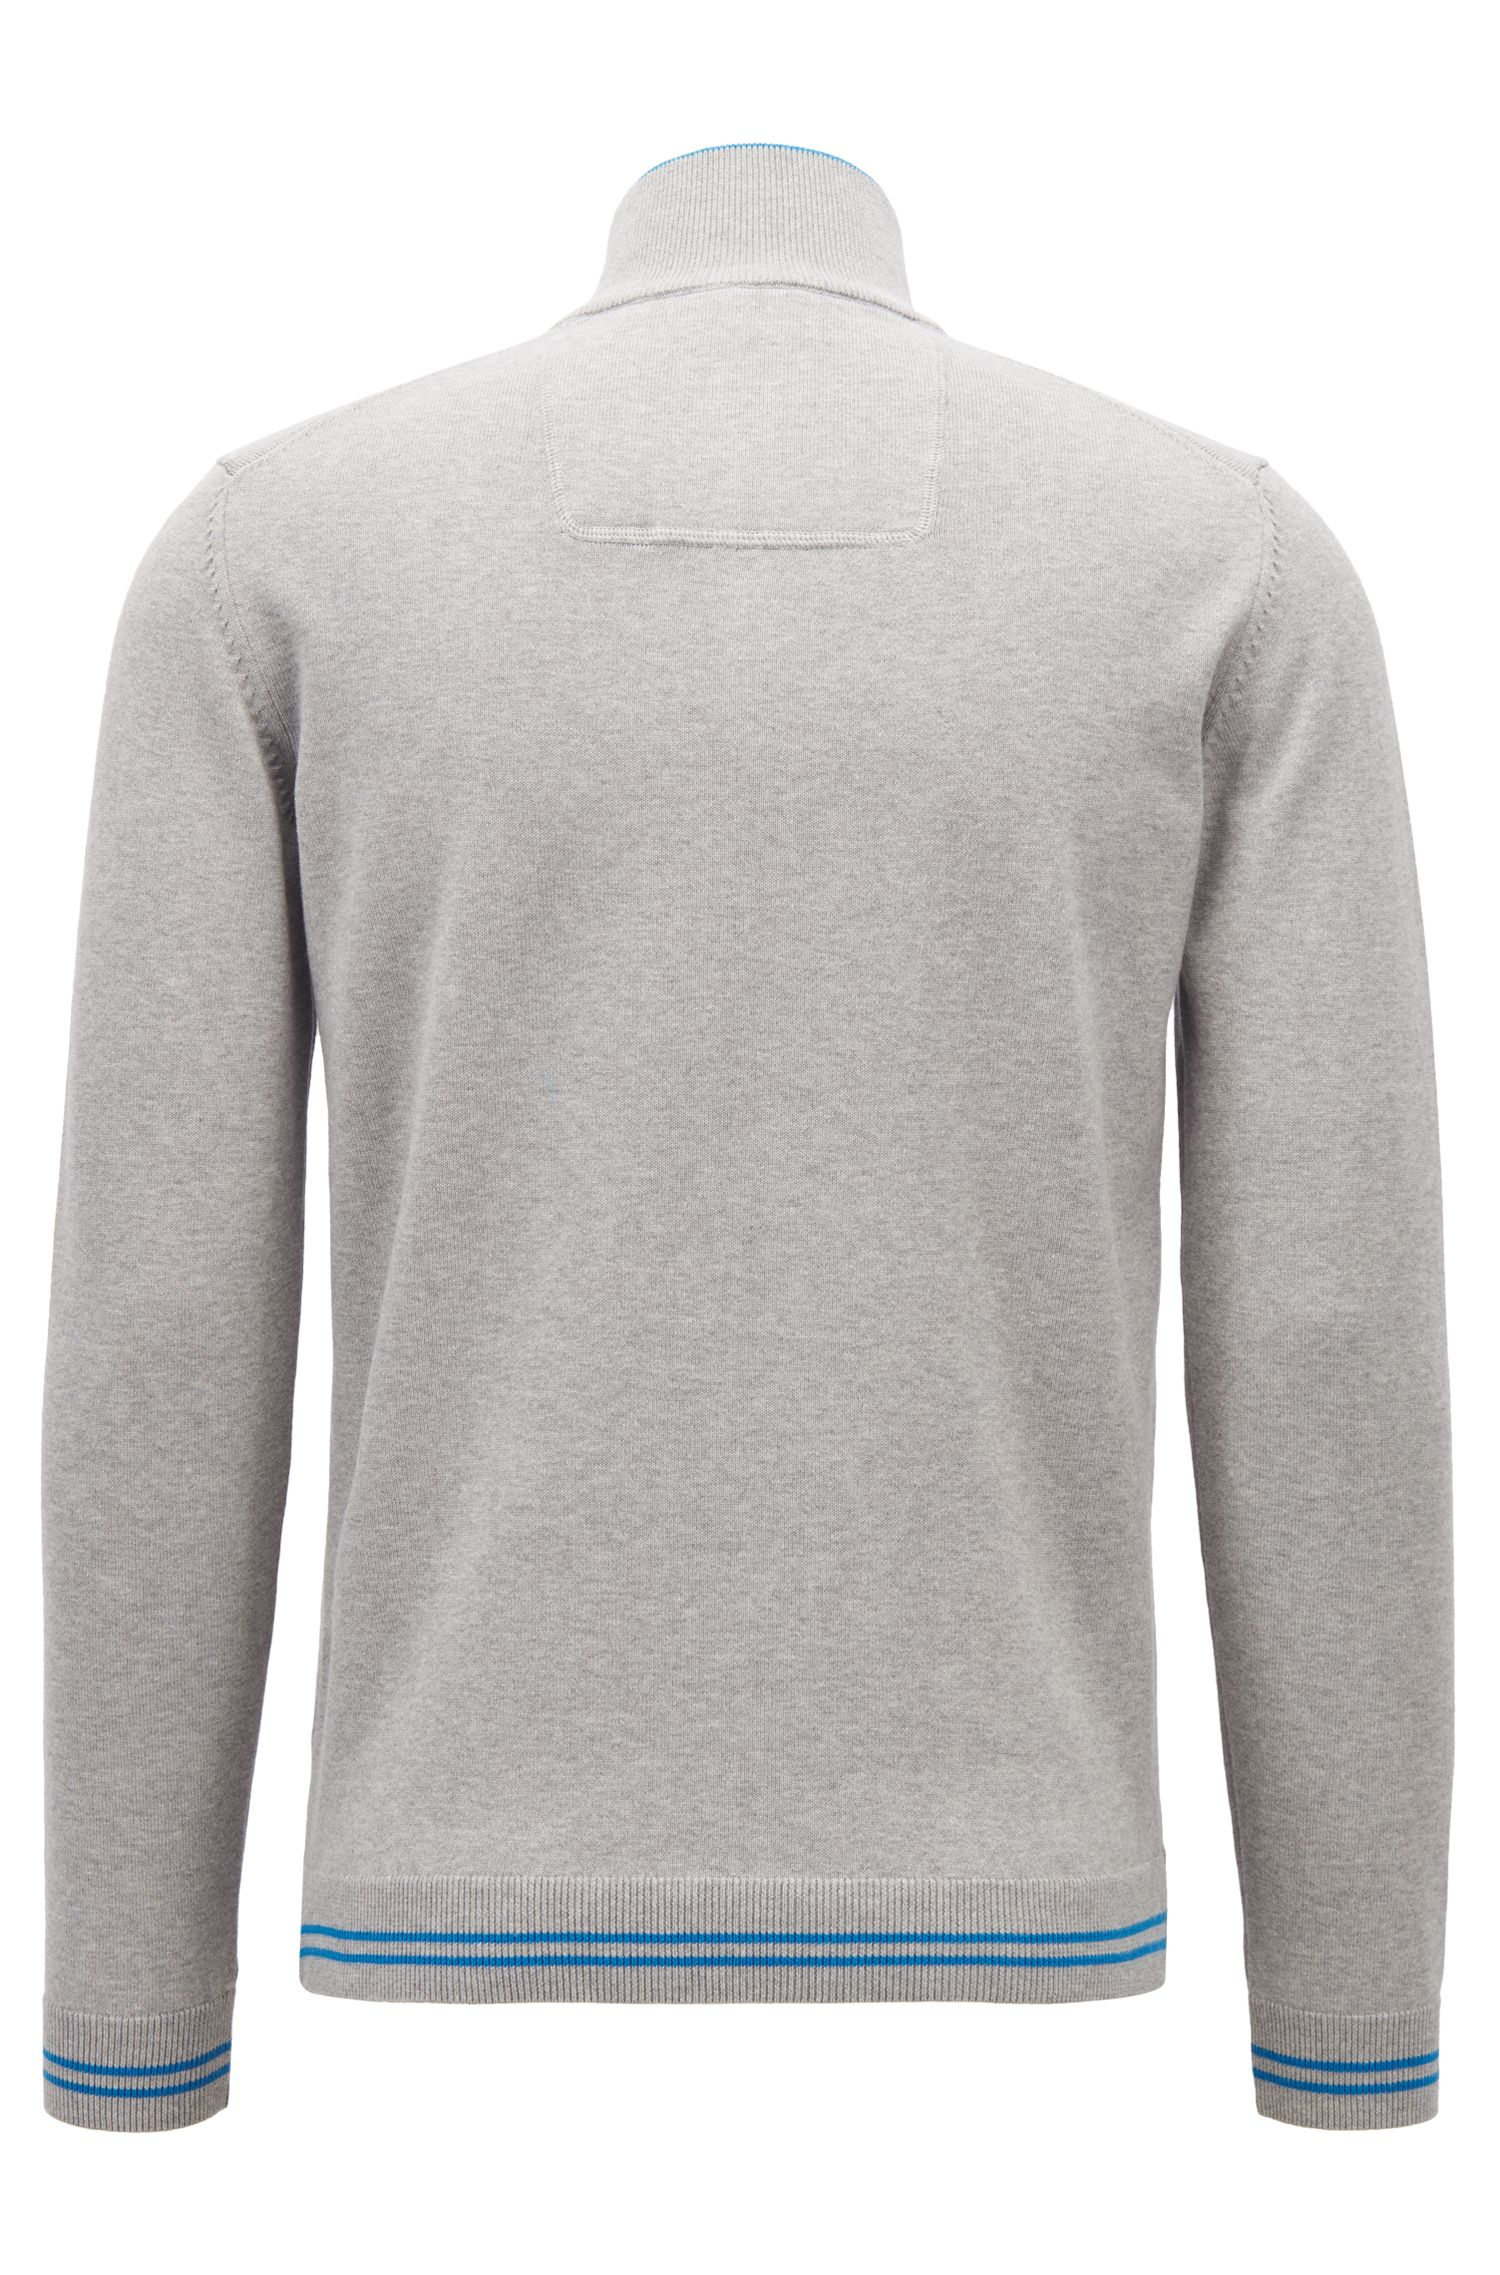 Zip-neck sweater in a knitted cotton blend, Light Grey